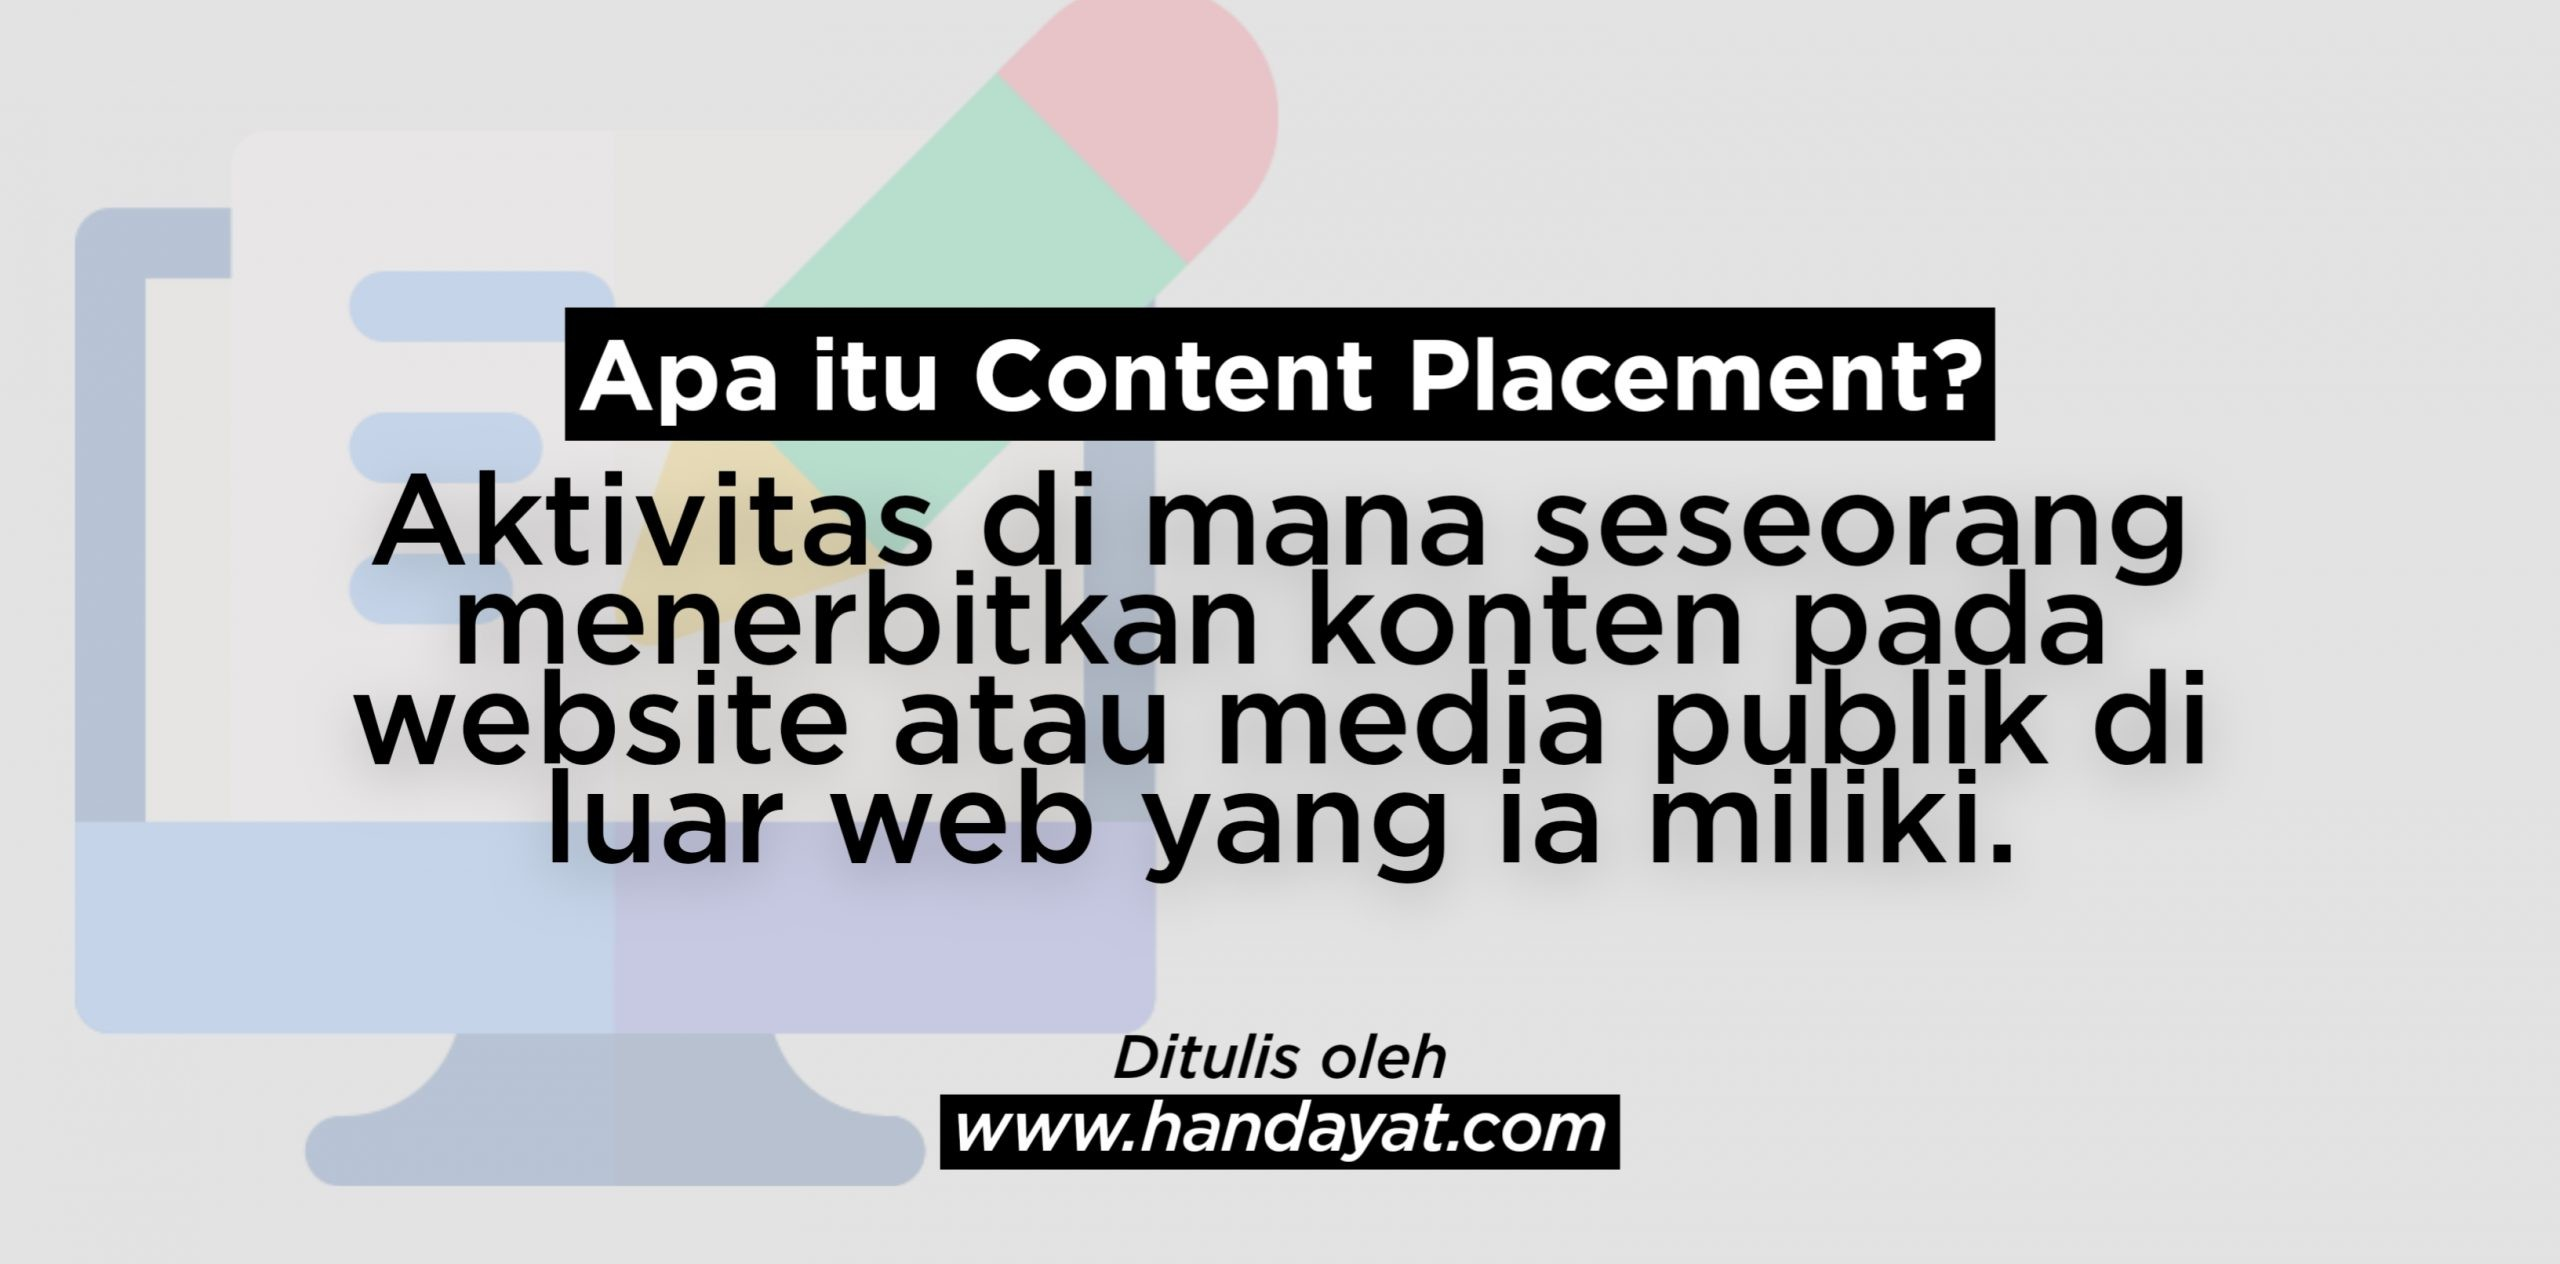 Apa itu Content Placement?